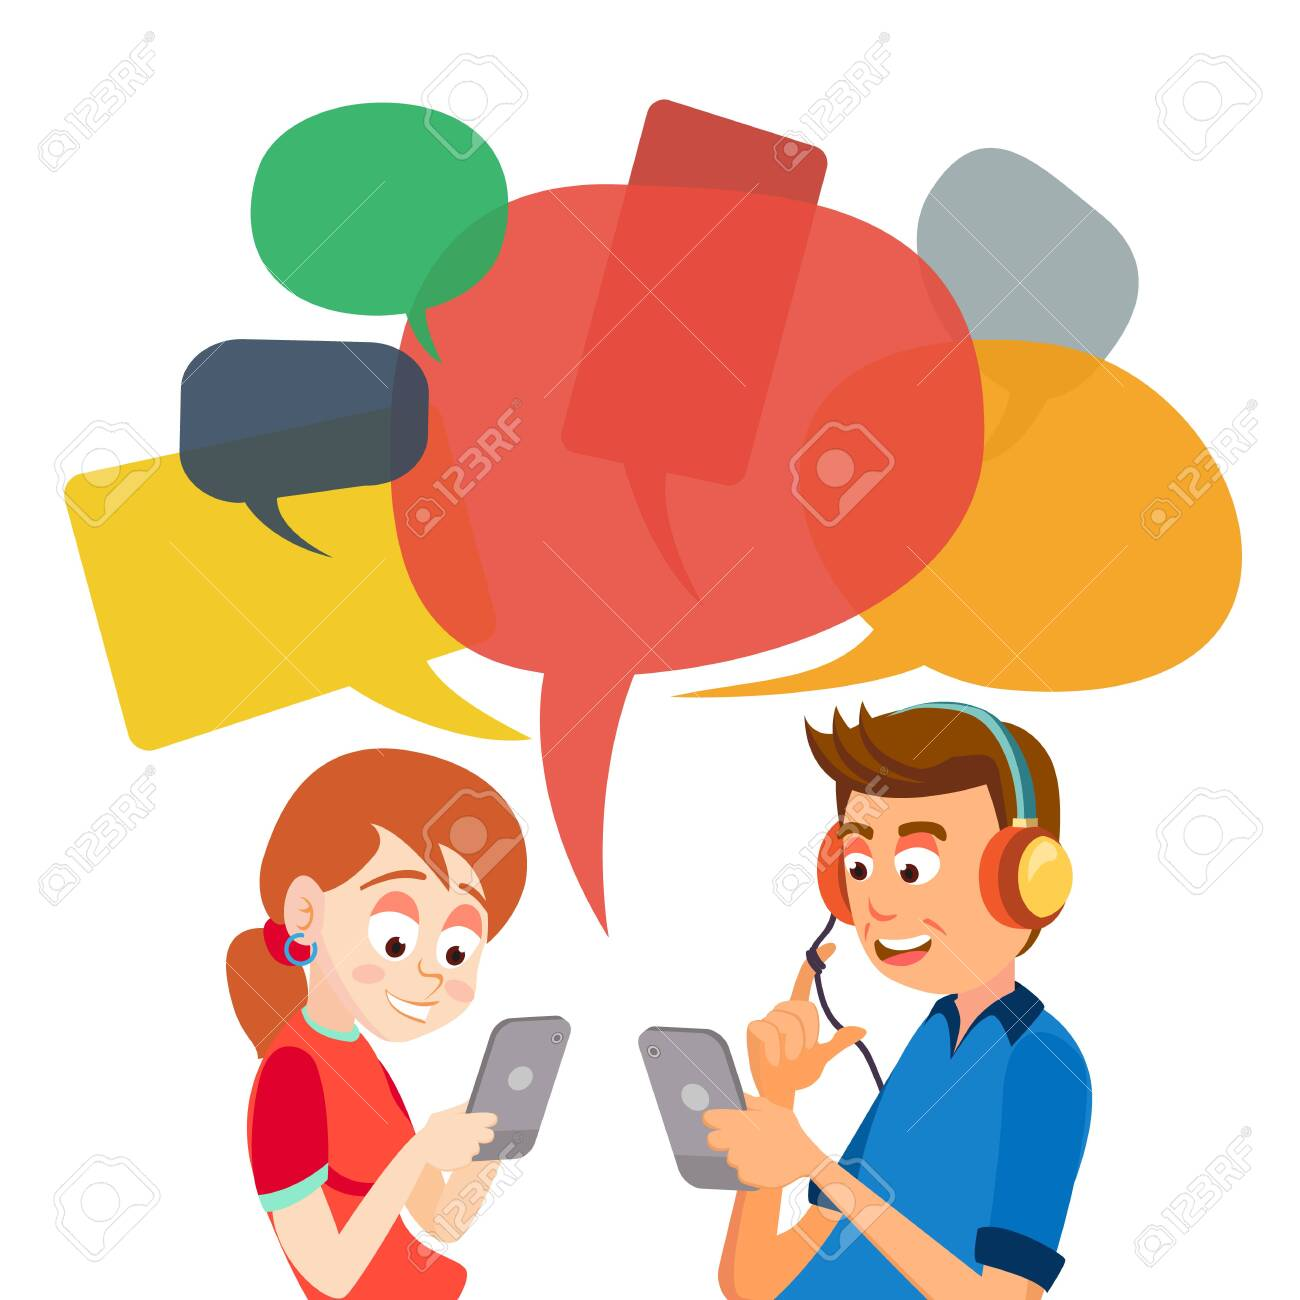 Teen Girl And Boy Messaging . Communicate On Internet. Chatting On Network. Using Smartphone. Chat Bubbles. Social Media Addiction - 128792561